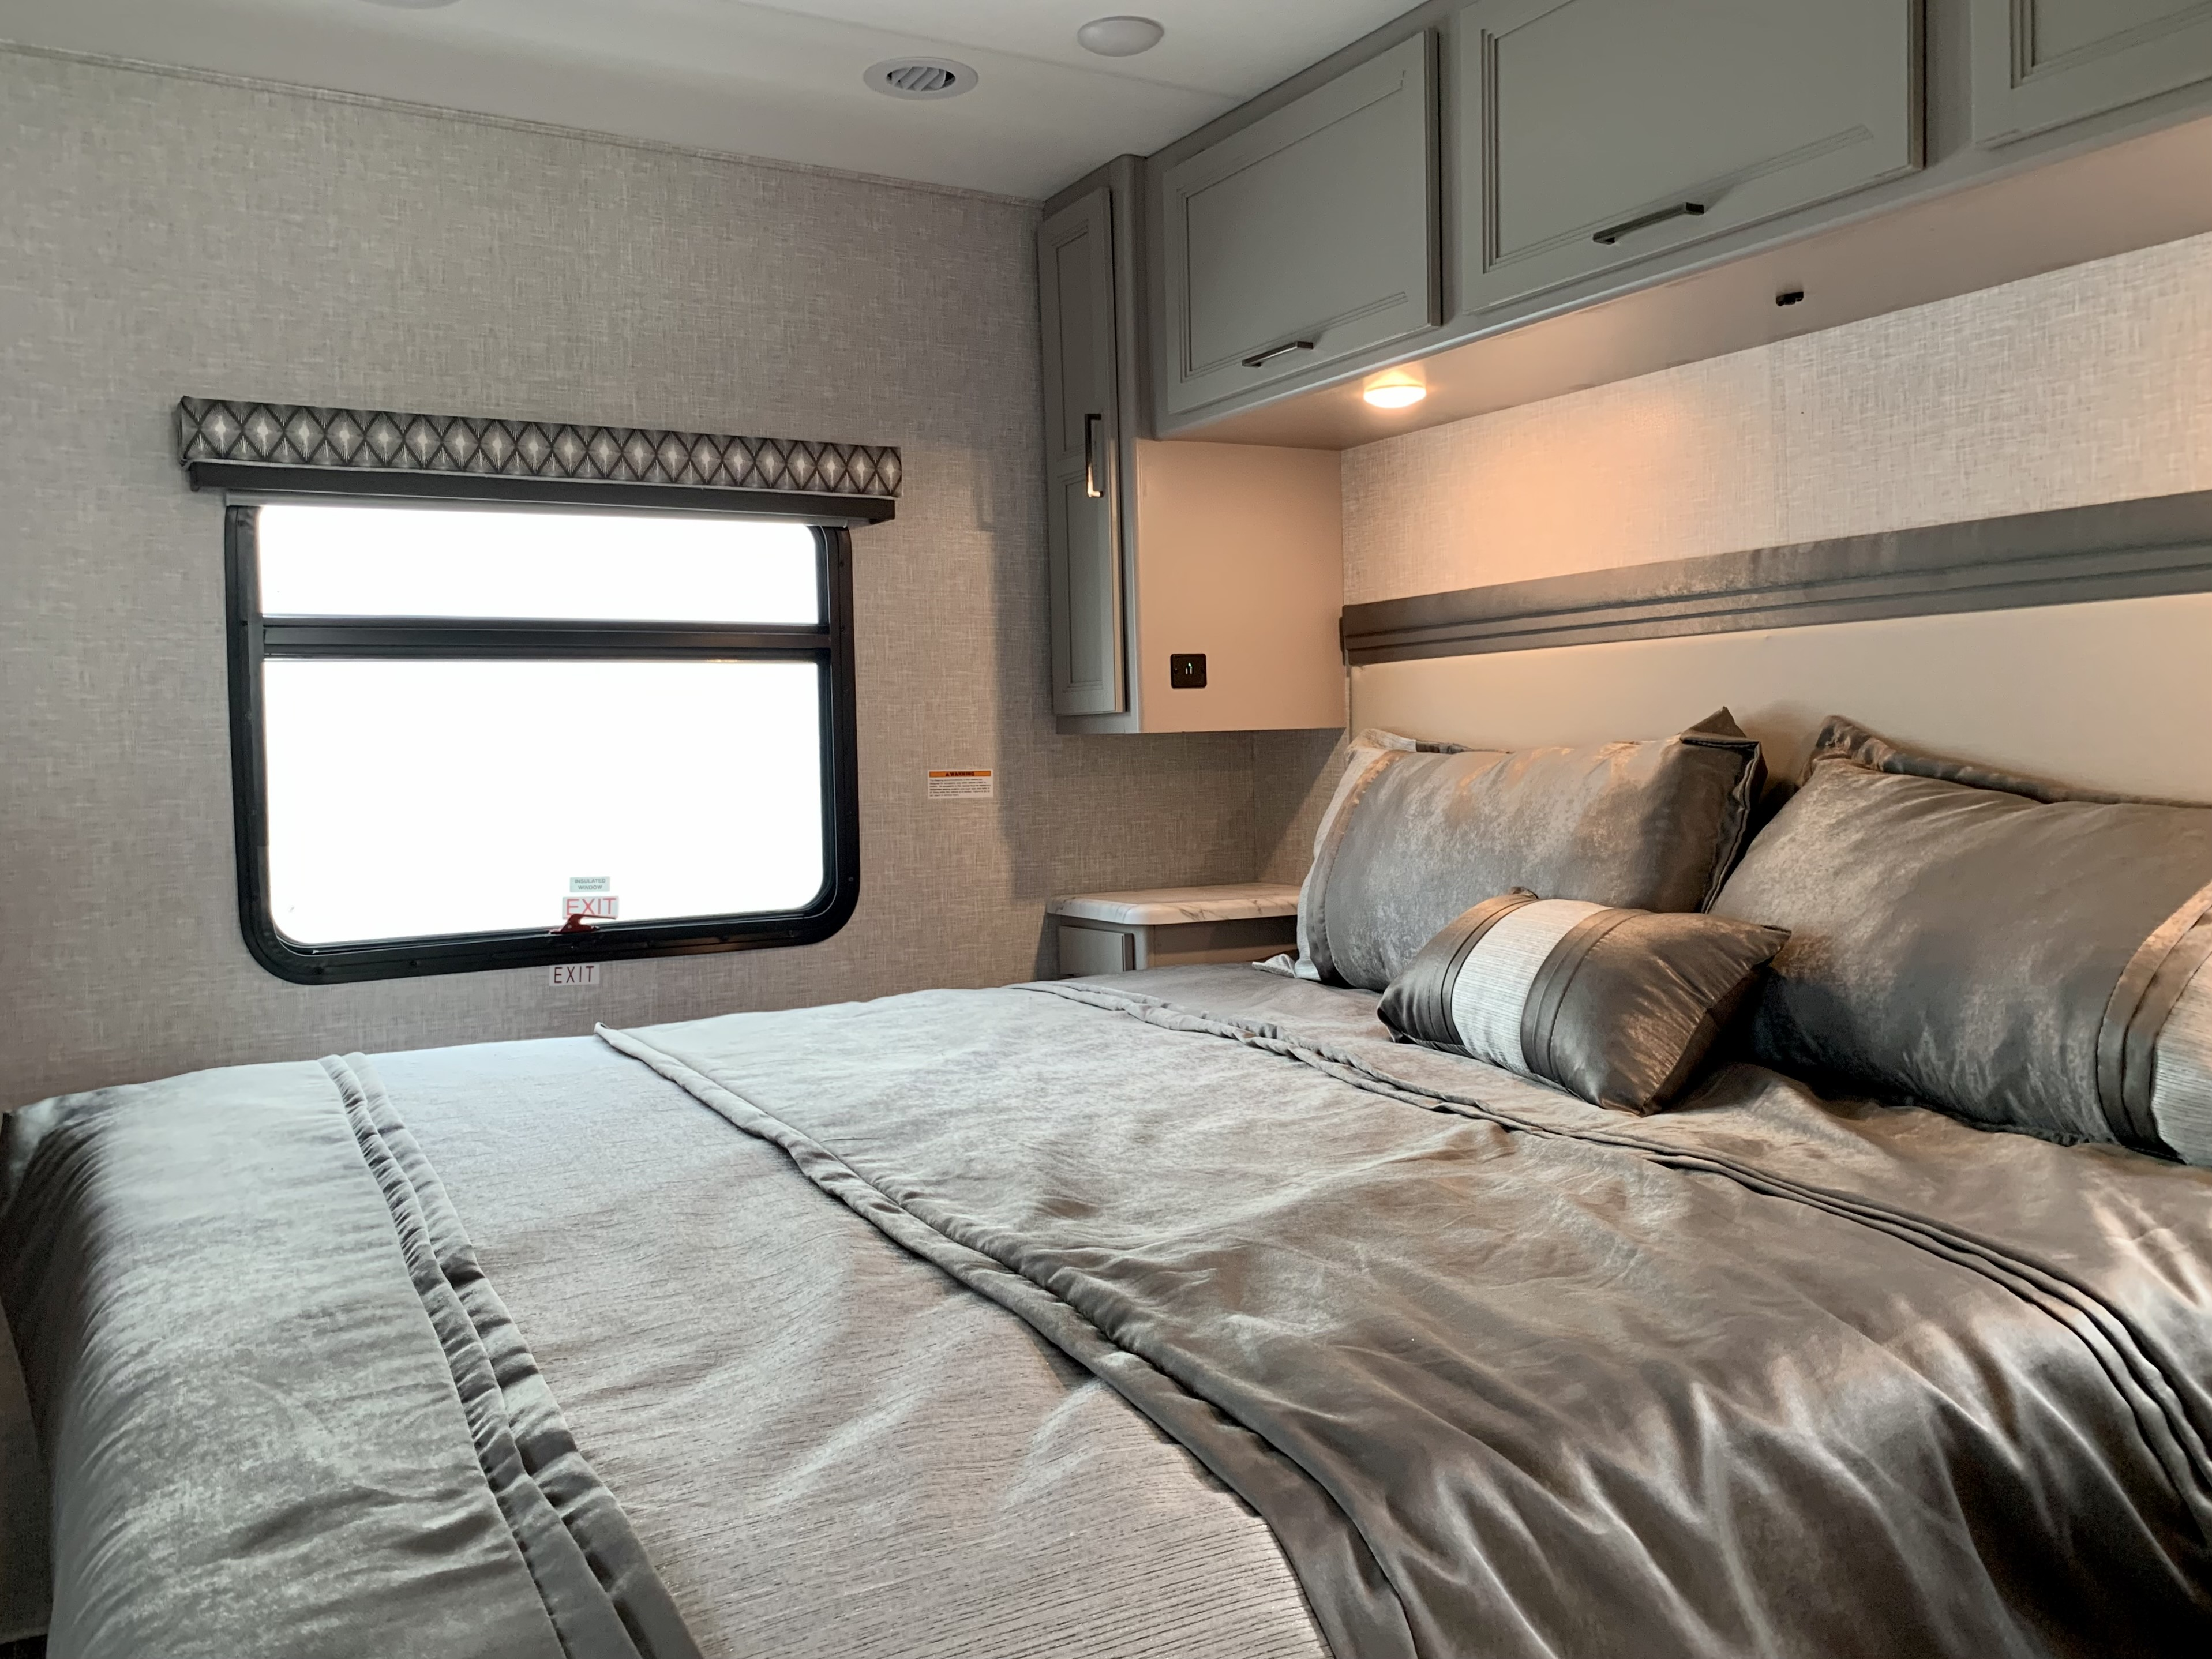 Hurricane 34R Class A Motorhome, 2 slides, rear master bedroom, mid 3 piece bathroom, kitchen and front livingroom.